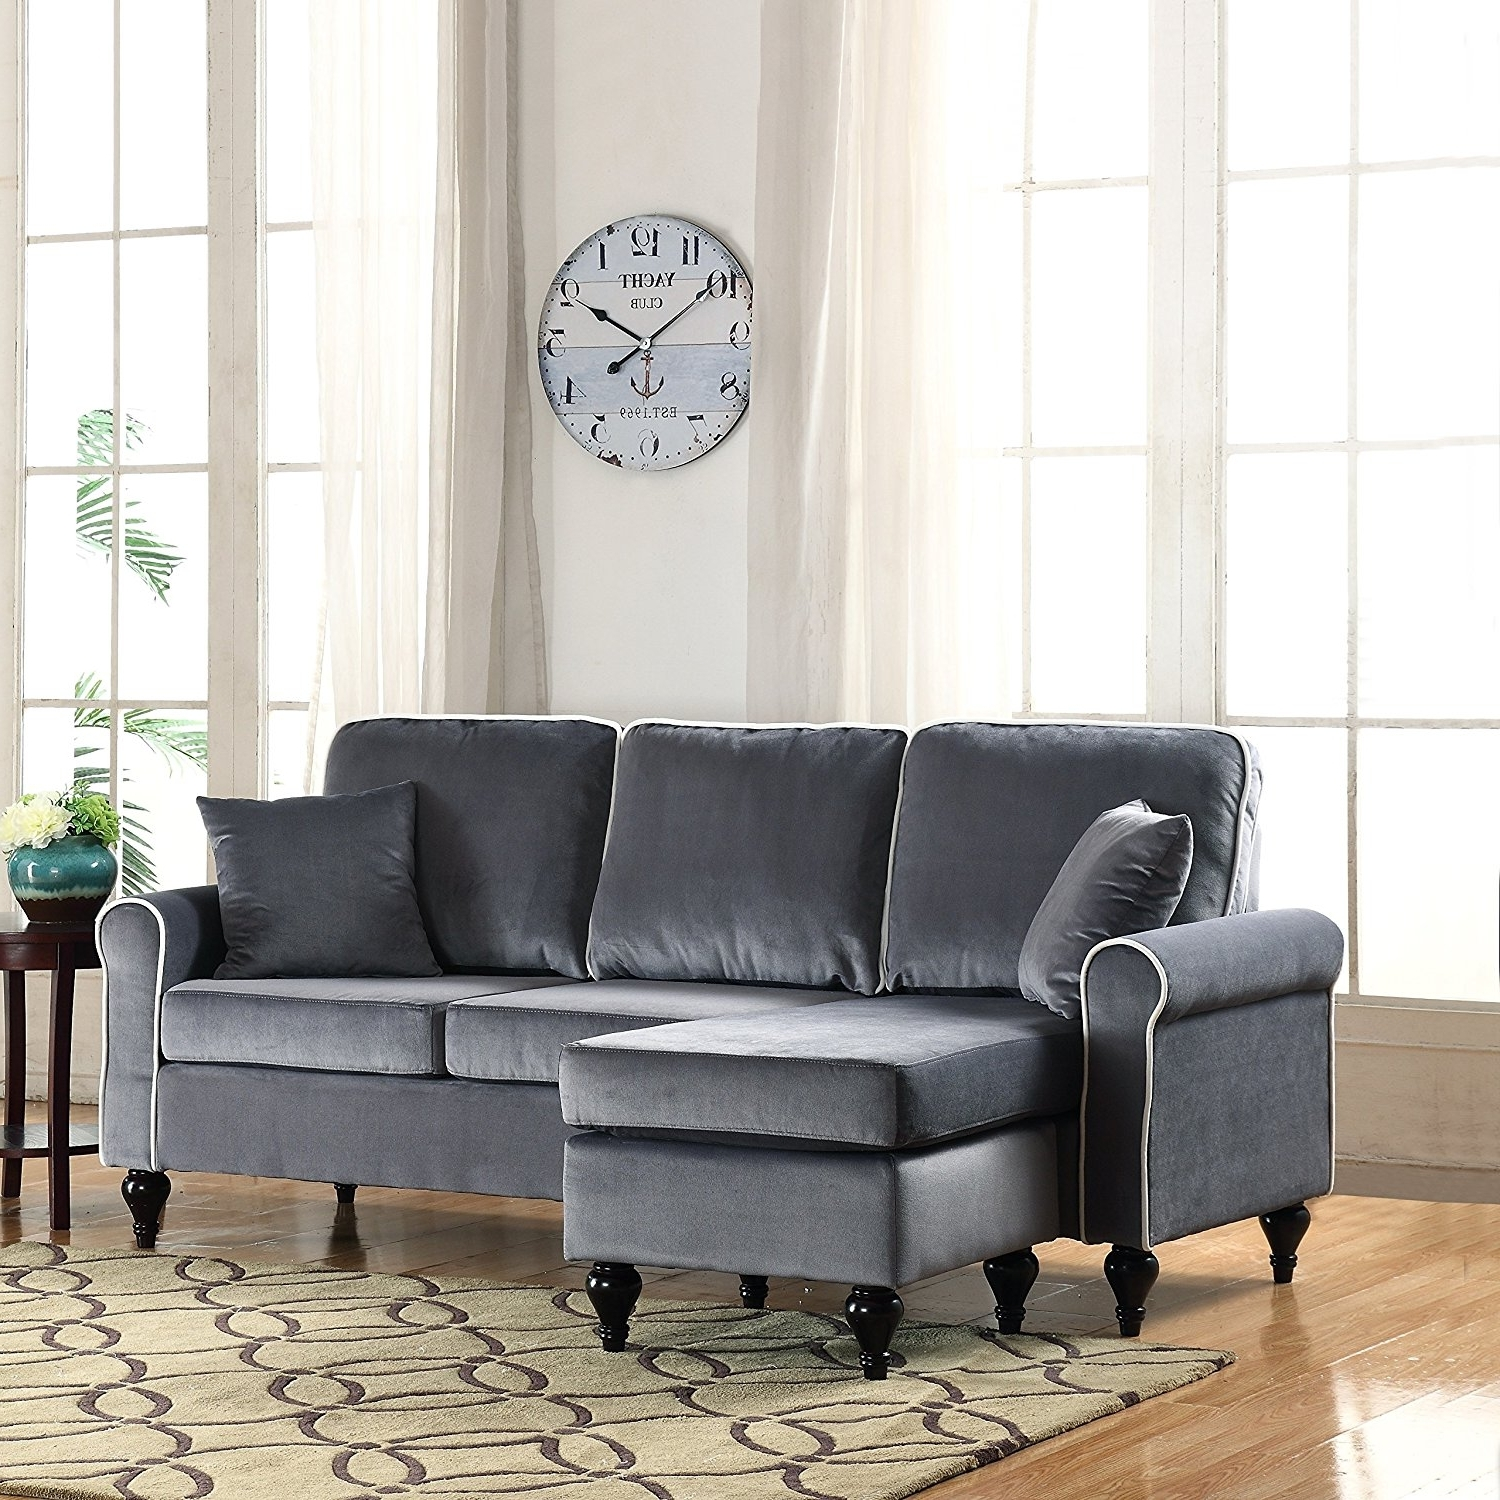 Amazon: Classic And Traditional Small Space Velvet Sectional With Regard To Popular Reversible Chaises (View 1 of 15)